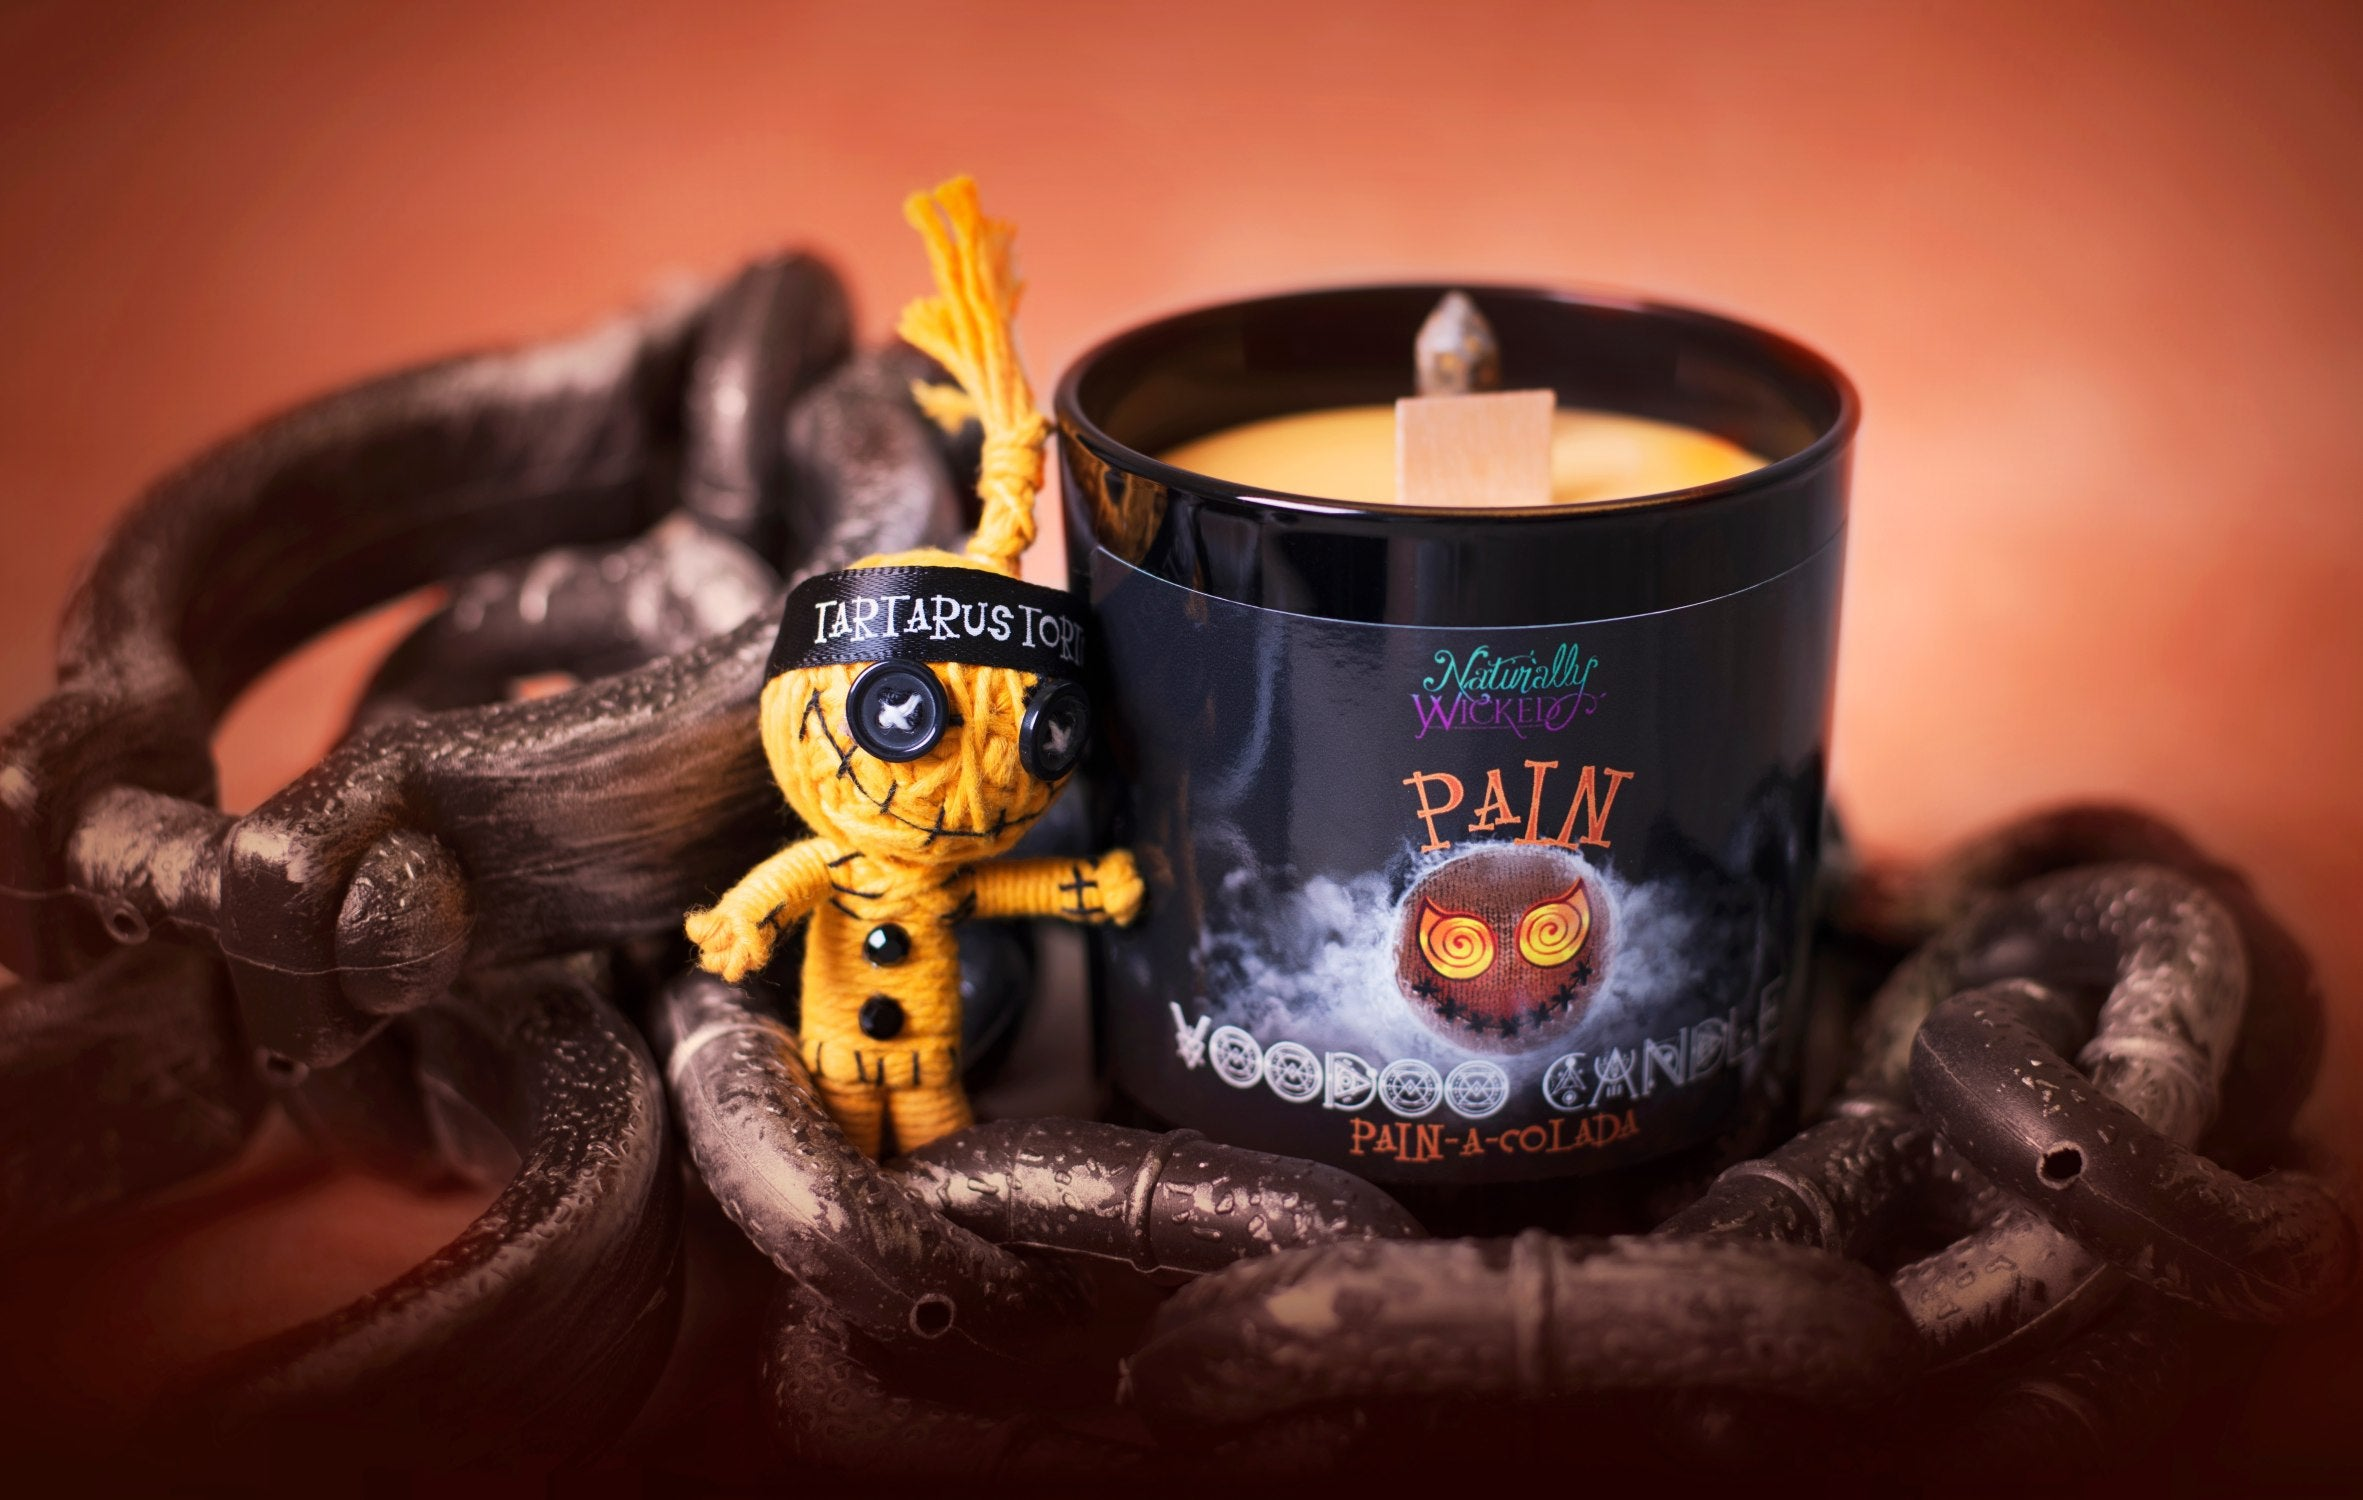 Naturally Wicked Voodoo Pain Spell Candle Entombed With Crystal, Amongst Torture Chains & Torture Voodoo Doll